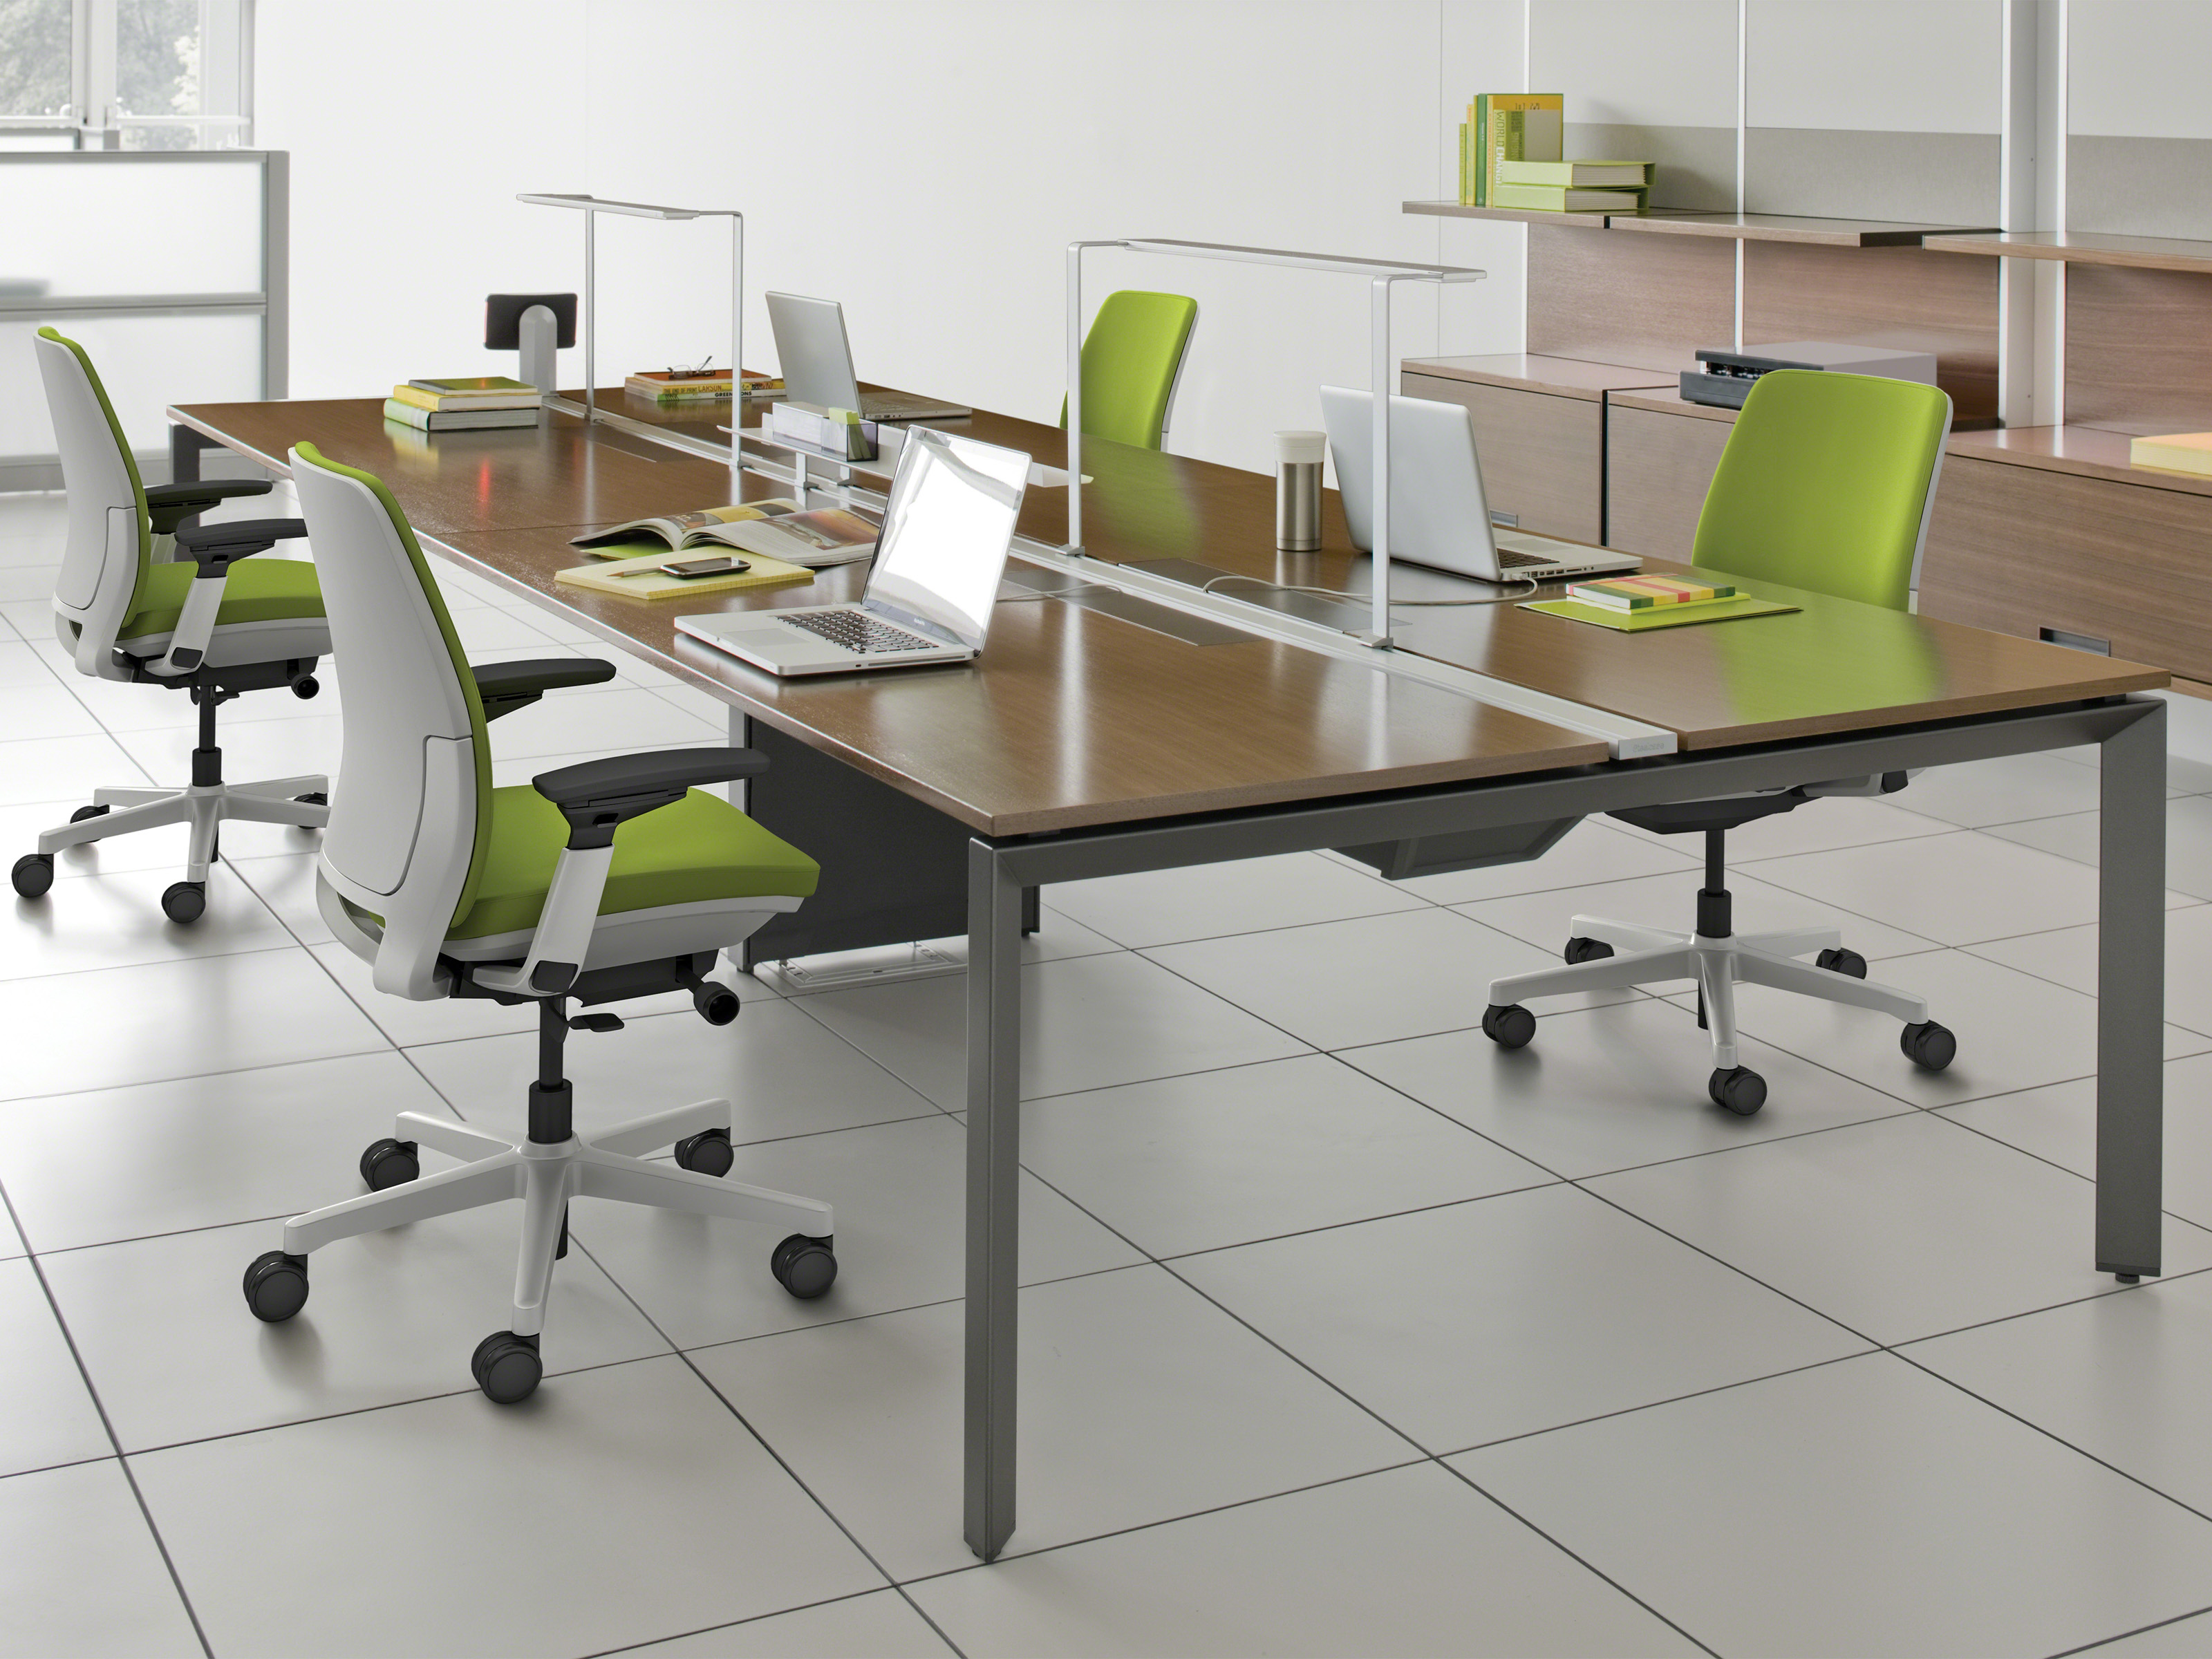 steelcase amia chair recall tiny table and chairs media